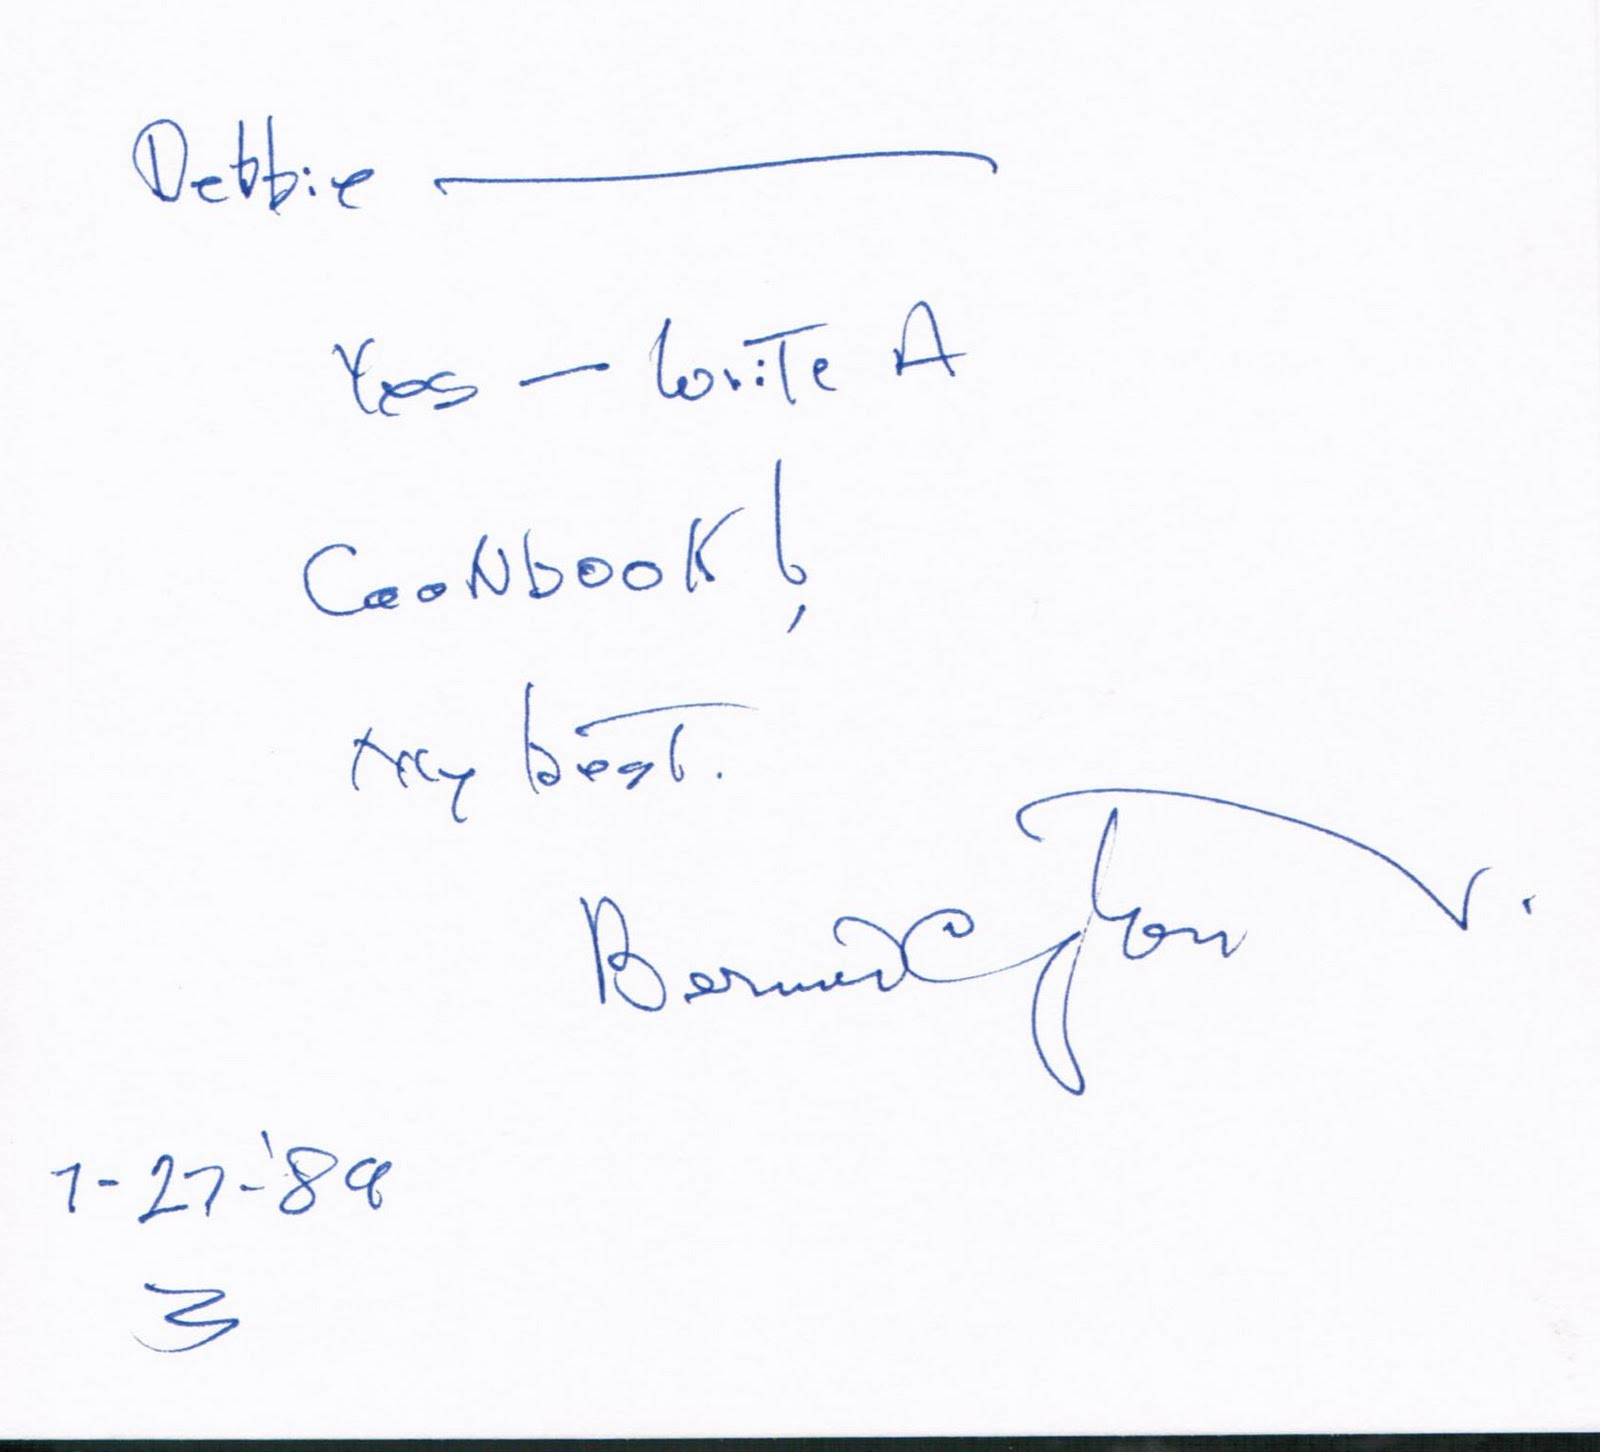 Bernard Was Always Interested In My Love Of Cooking And Encouraged Me To Write A Cookbook Someday Wrote The Lovely Inscription His Pastry Book